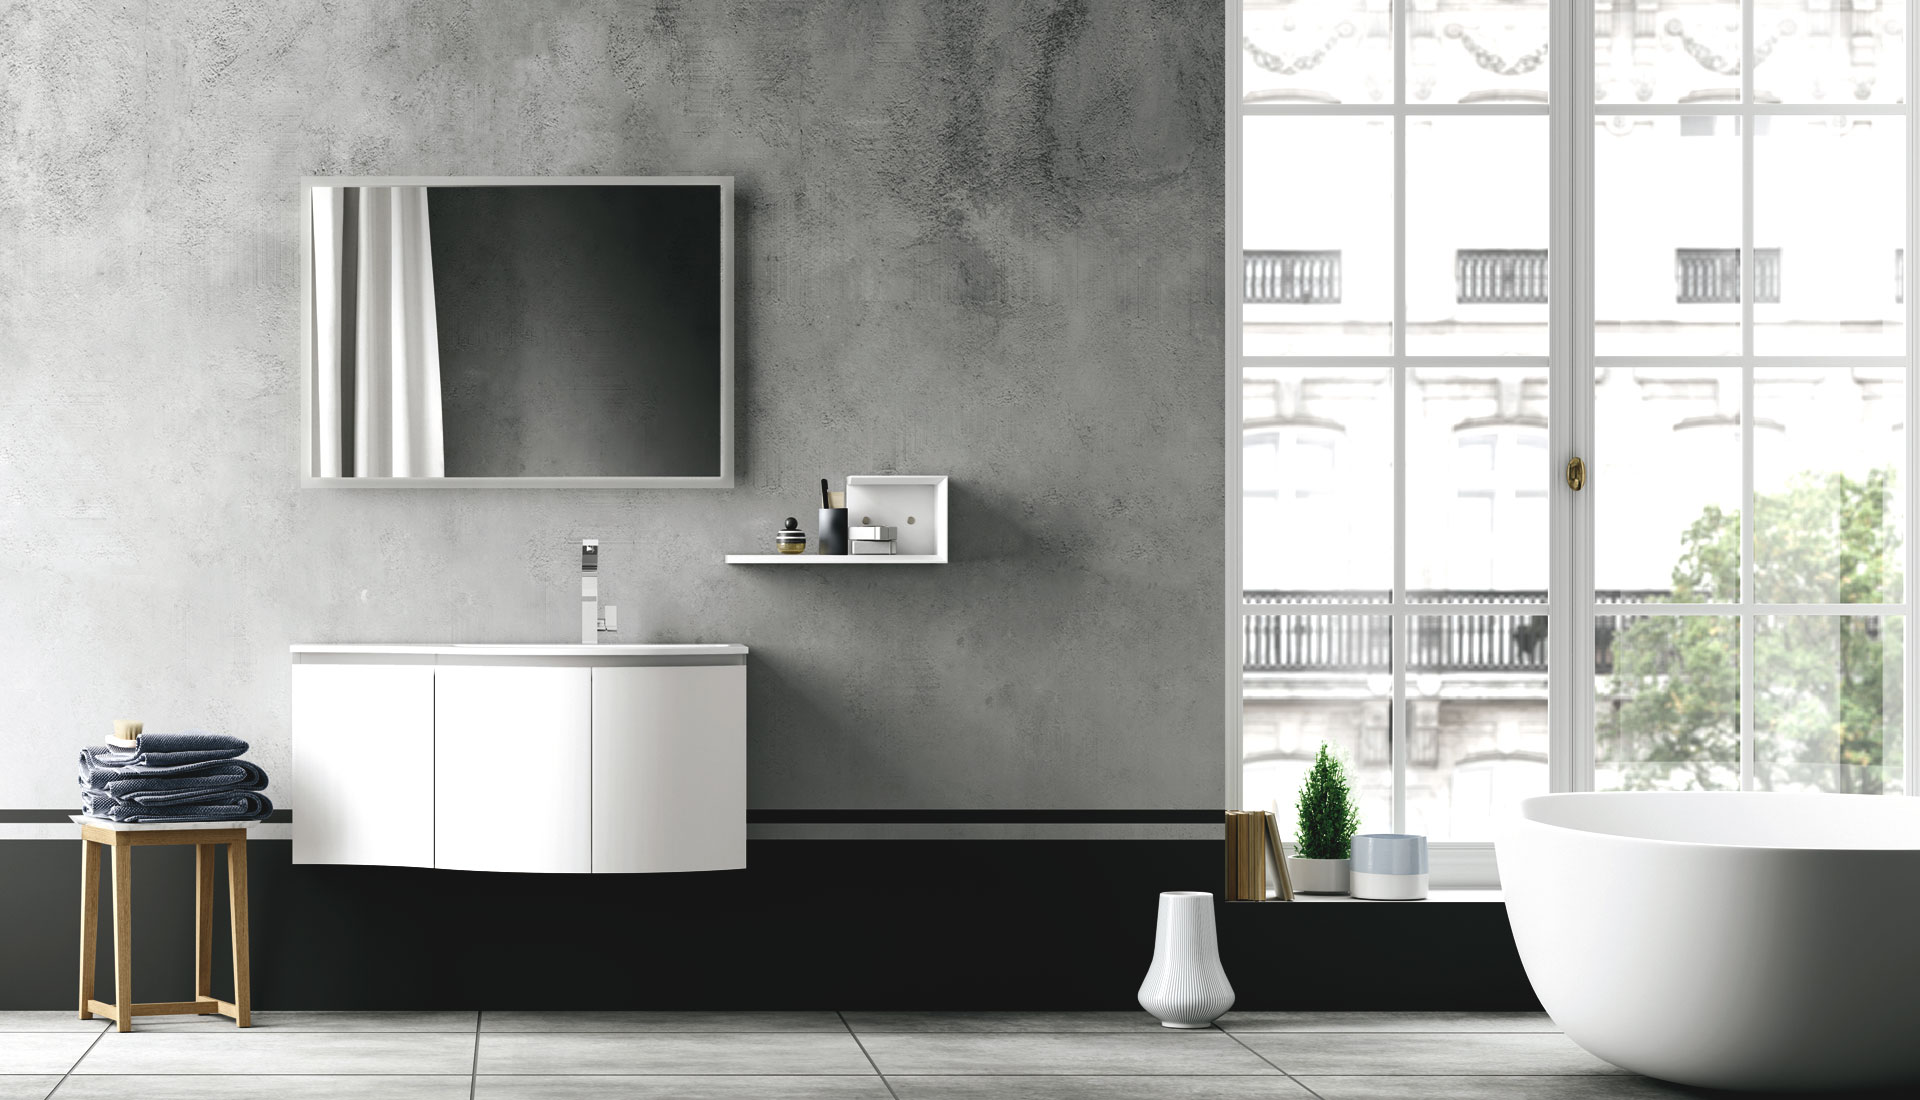 Creative Handleless Bathroom Furniture  Puntotre Arredobagno